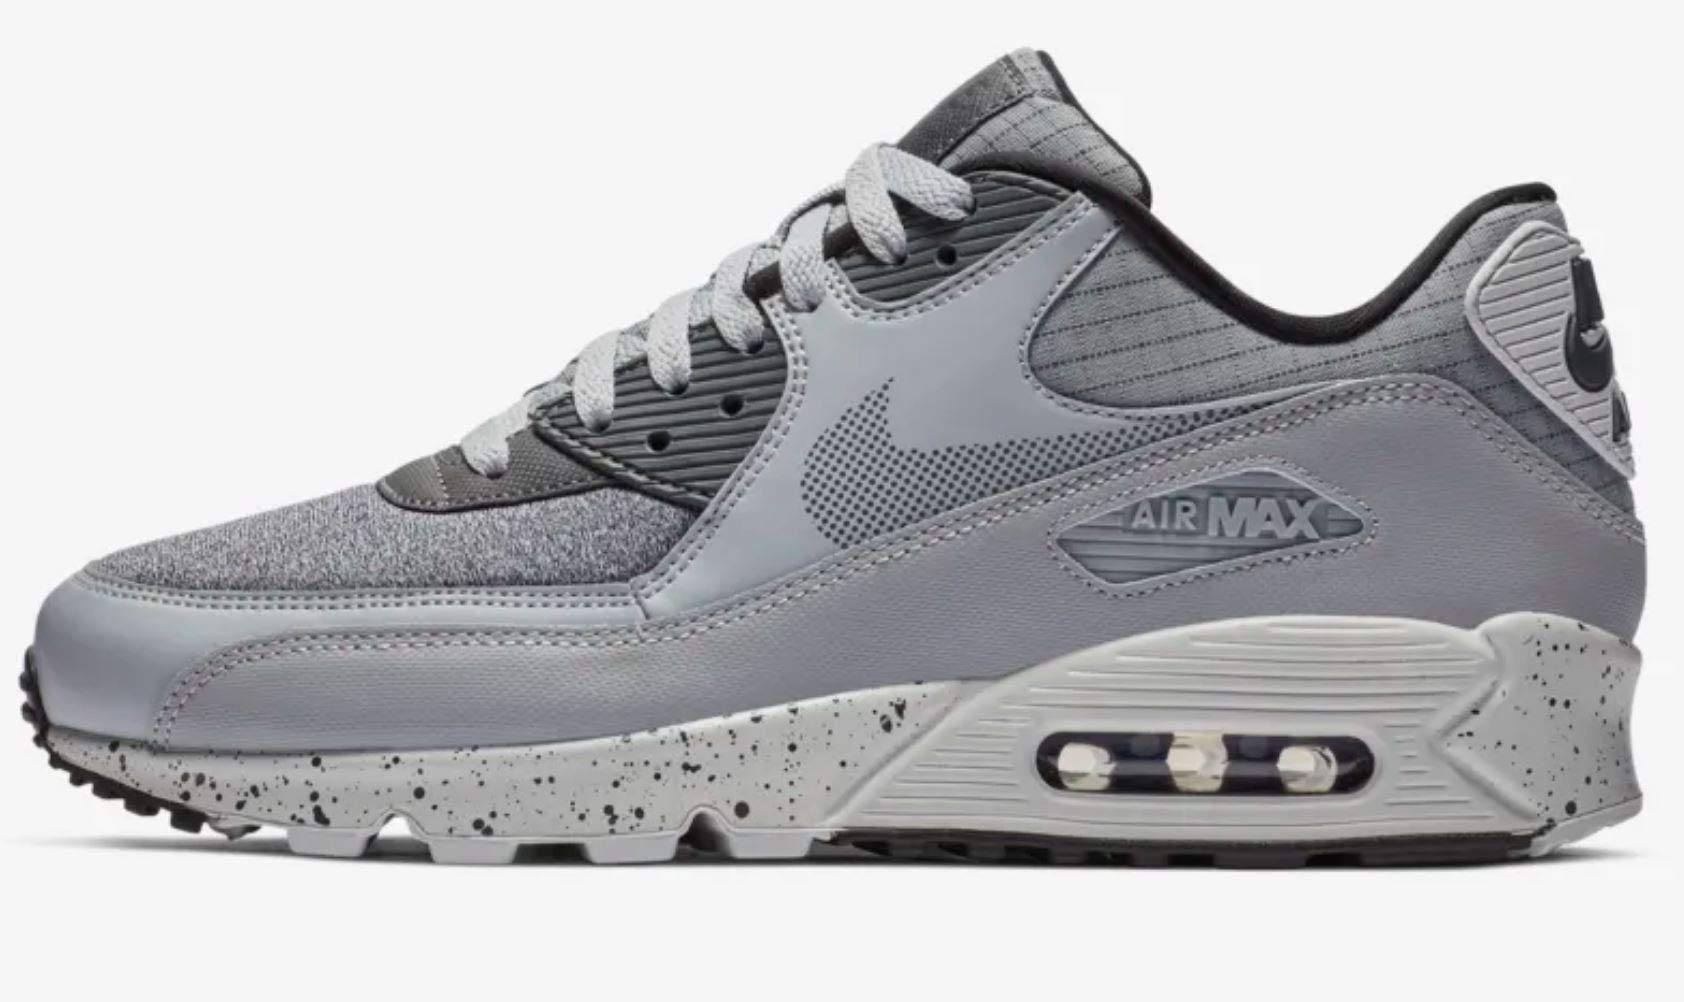 Nike Men's Air Max 90 Premium Wolf GreyDark Grey Black Pure Platinum 700155 016 (Size: 7)